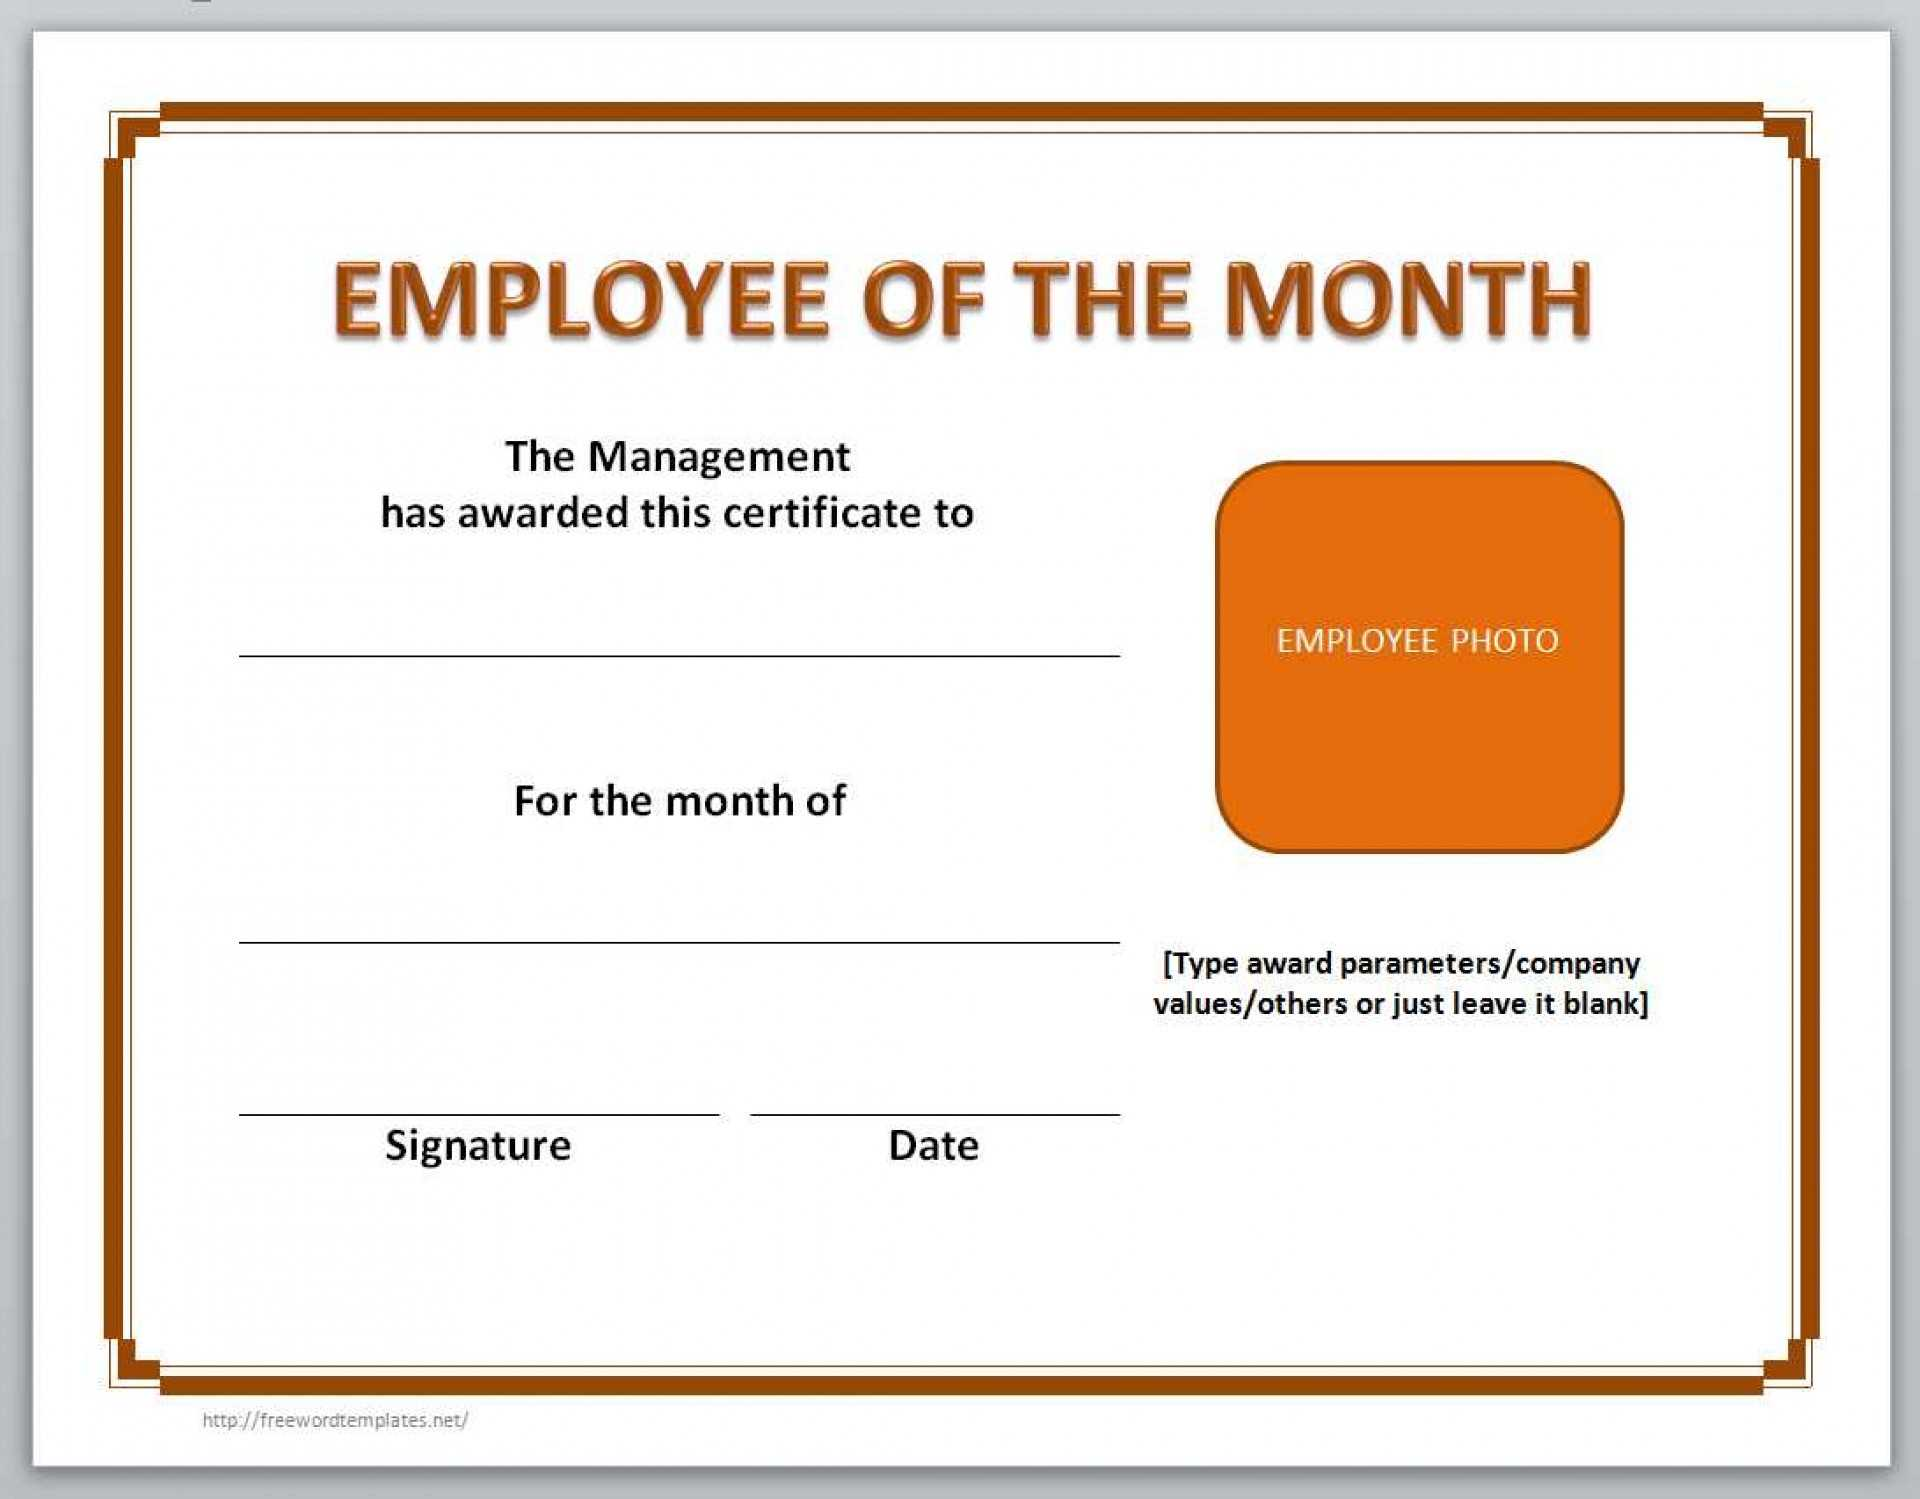 023 Employee Of The Month Certificate Template Microsoft Inside Employee Of The Month Certificate Templates